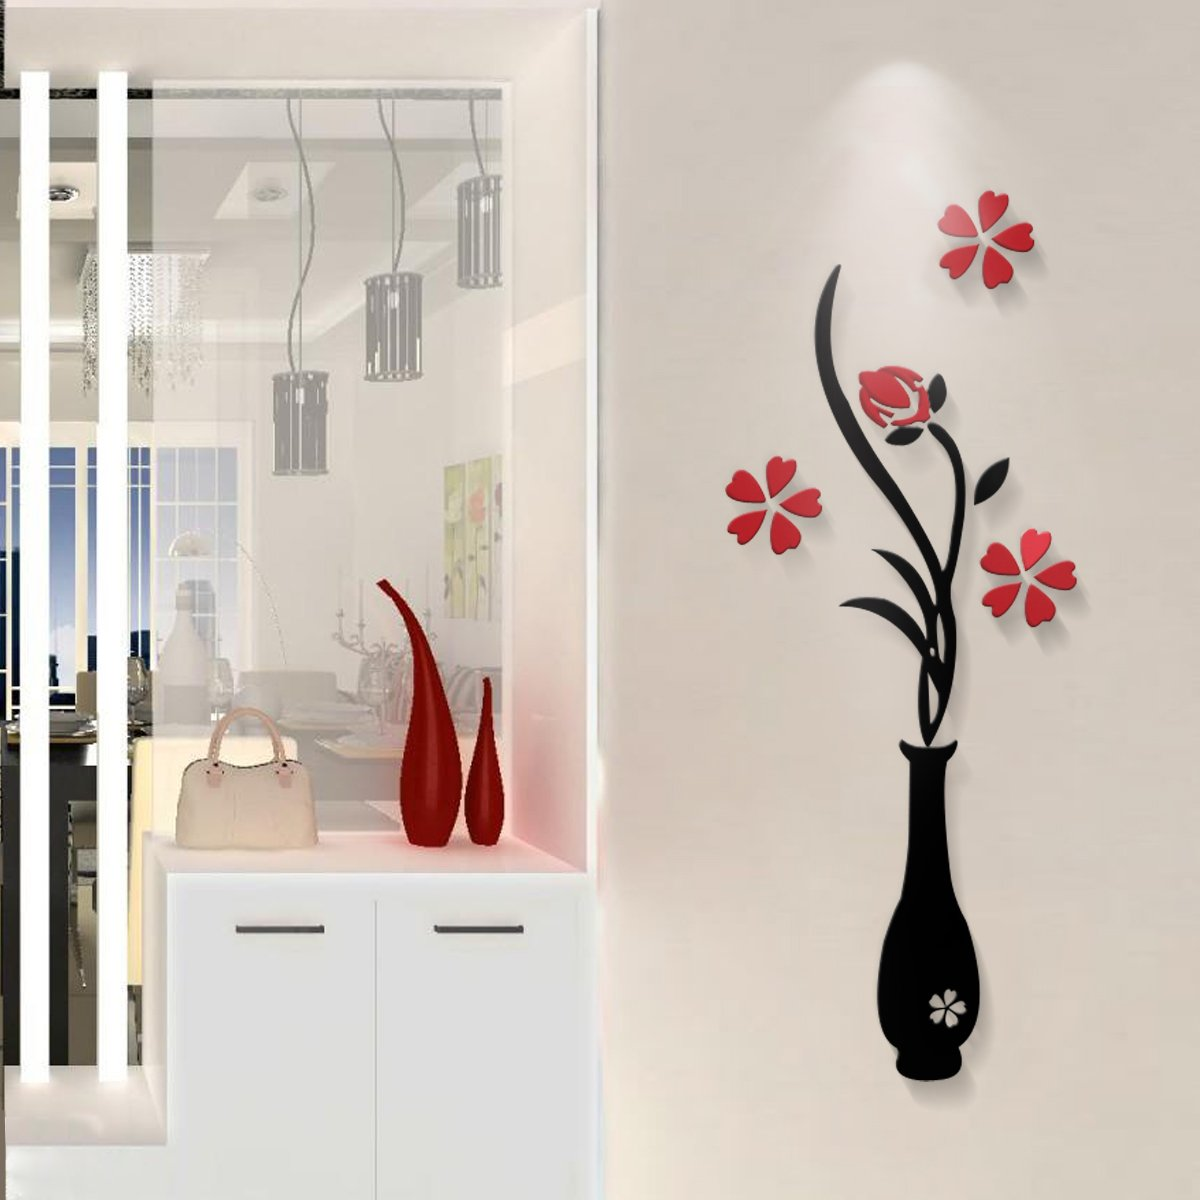 amazon com mkono 3d stereo wall decals acrylic crystal wall amazon com mkono 3d stereo wall decals acrylic crystal wall sticker art mural decoration for home living room bedroom vase red plum blossom s home